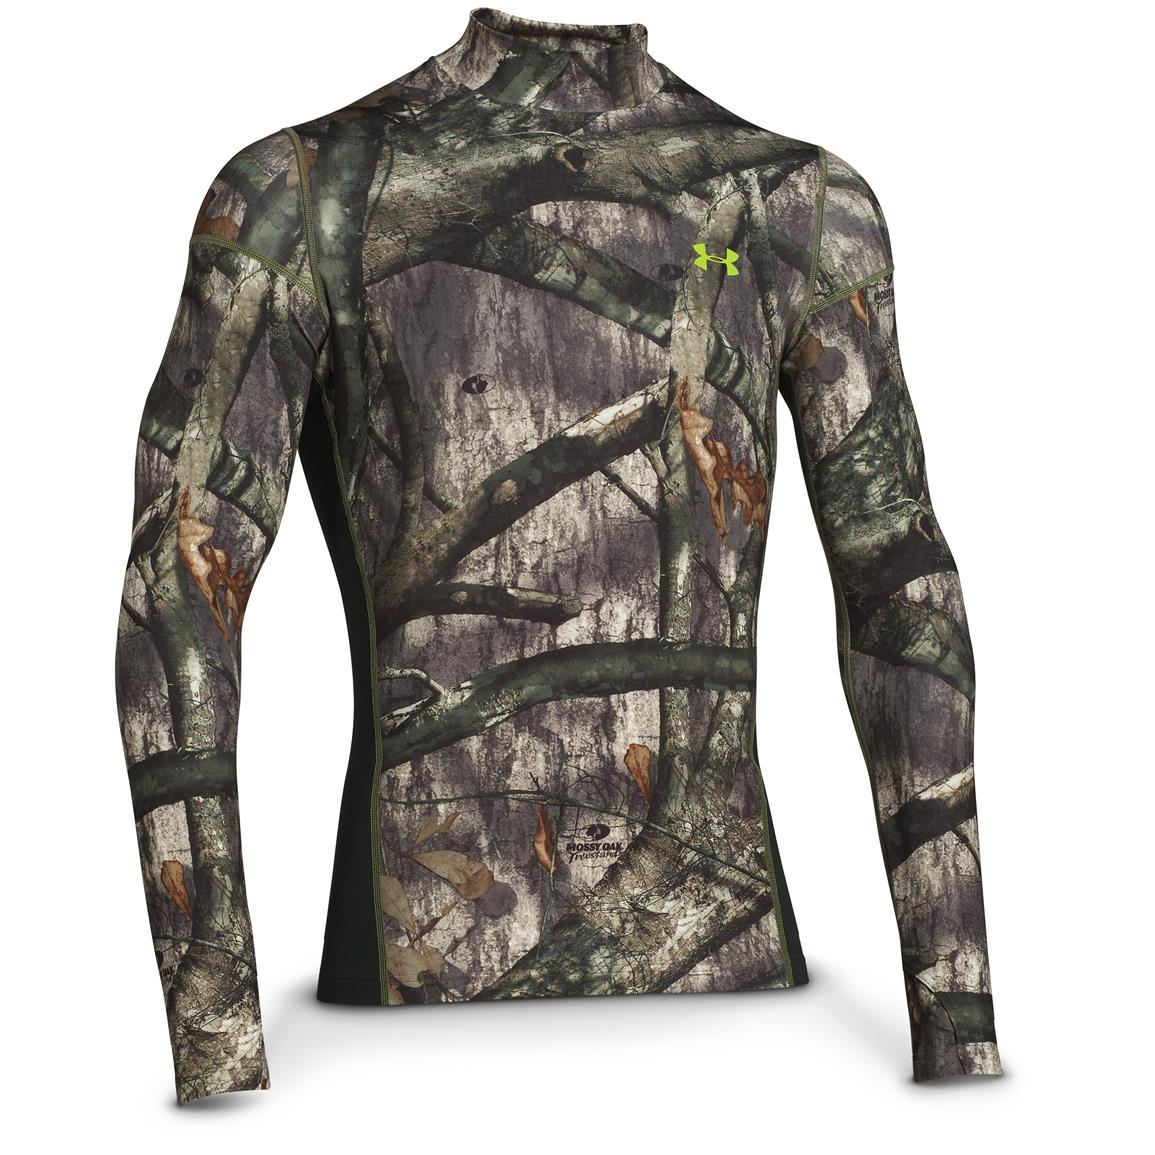 Under Armour ColdGear Infrared Scent Control Tevo Mock Long-Sleeve Shirt, Mossy Oak Treestand